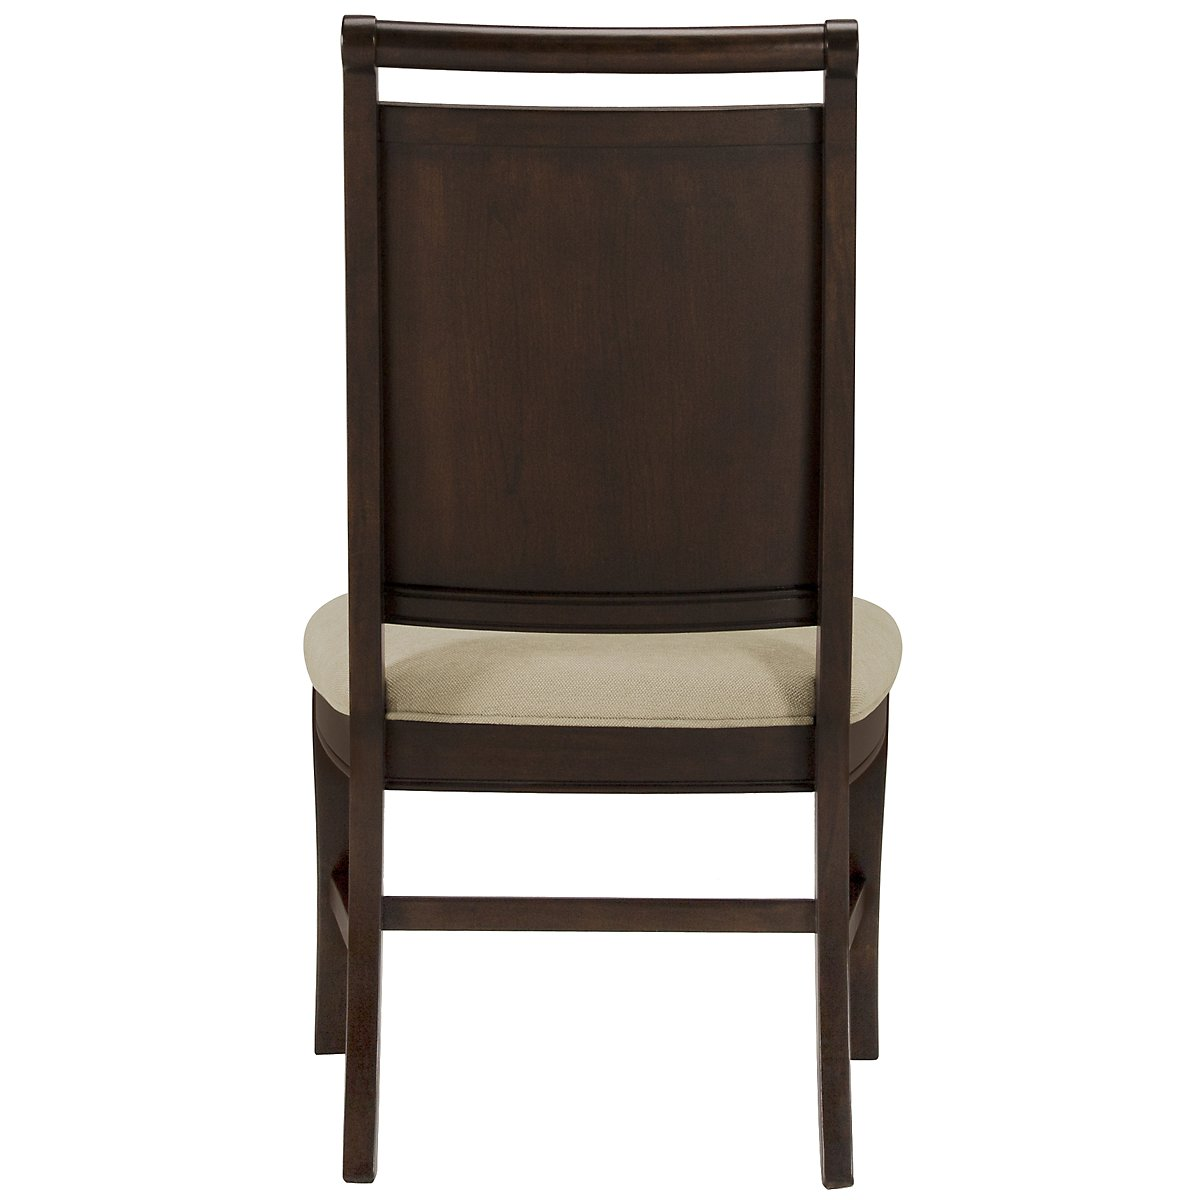 City Furniture Canyon Mid Tone Wood Side Chair